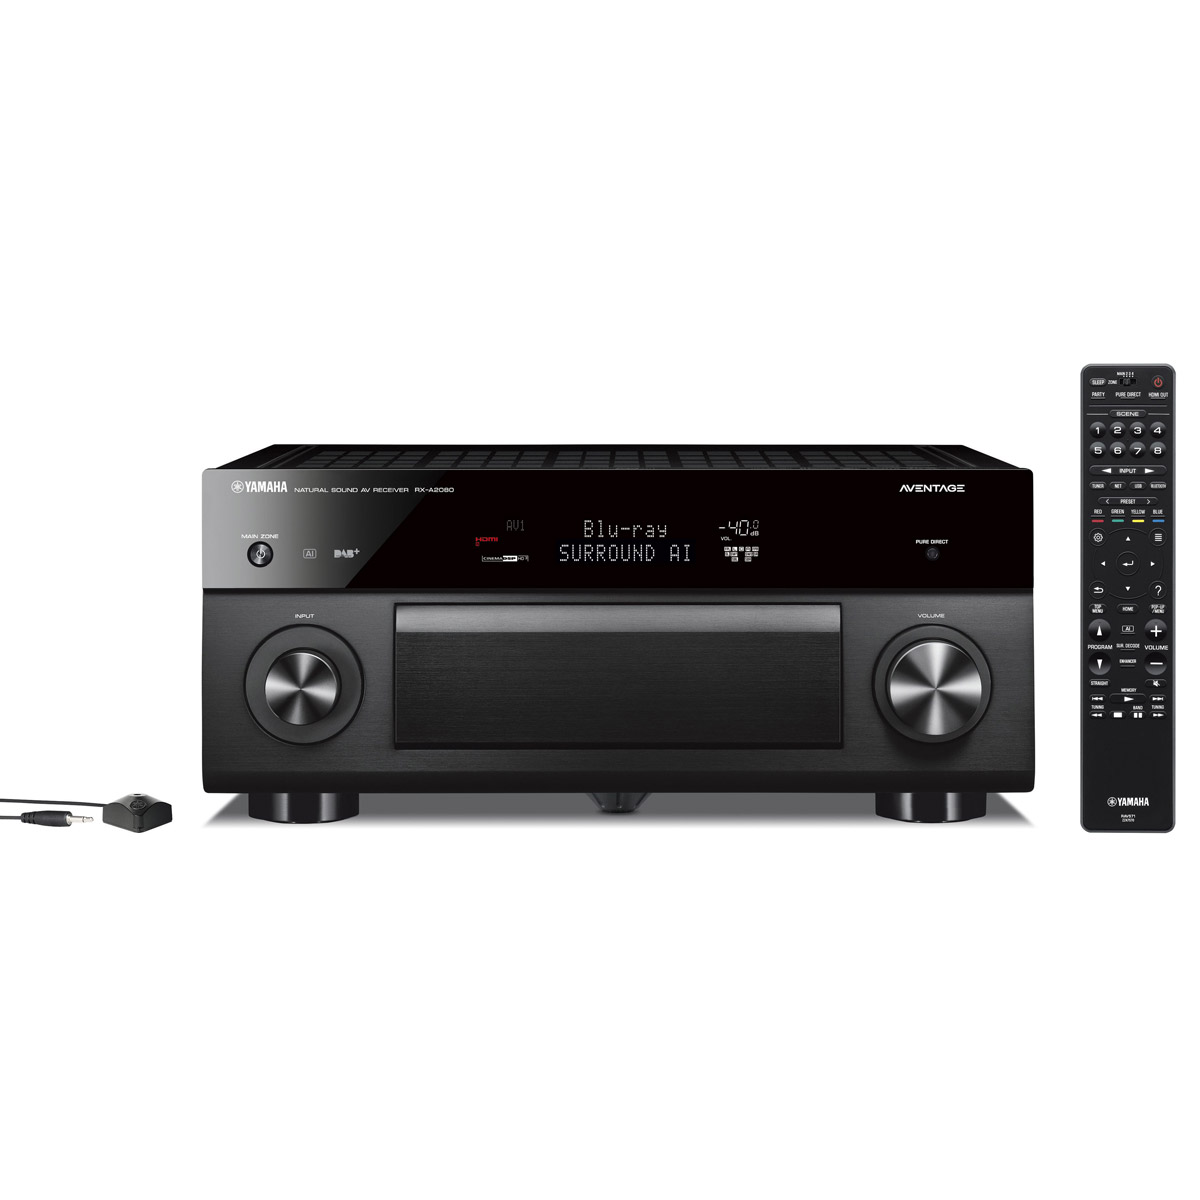 Ampli home cinéma Yamaha RX-A2080 Noir Ampli-tuner Home Cinéma 9.2 3D 140W/canal - Dolby Atmos/DTS:X - 7x HDMI HDCP 2.2 Ultra HD 4K - Wi-Fi/Bluetooth/DLNA/AirPlay - MusicCast/MusicCast Surround - A.R.T. Wedge - Calibration YPAO RSC